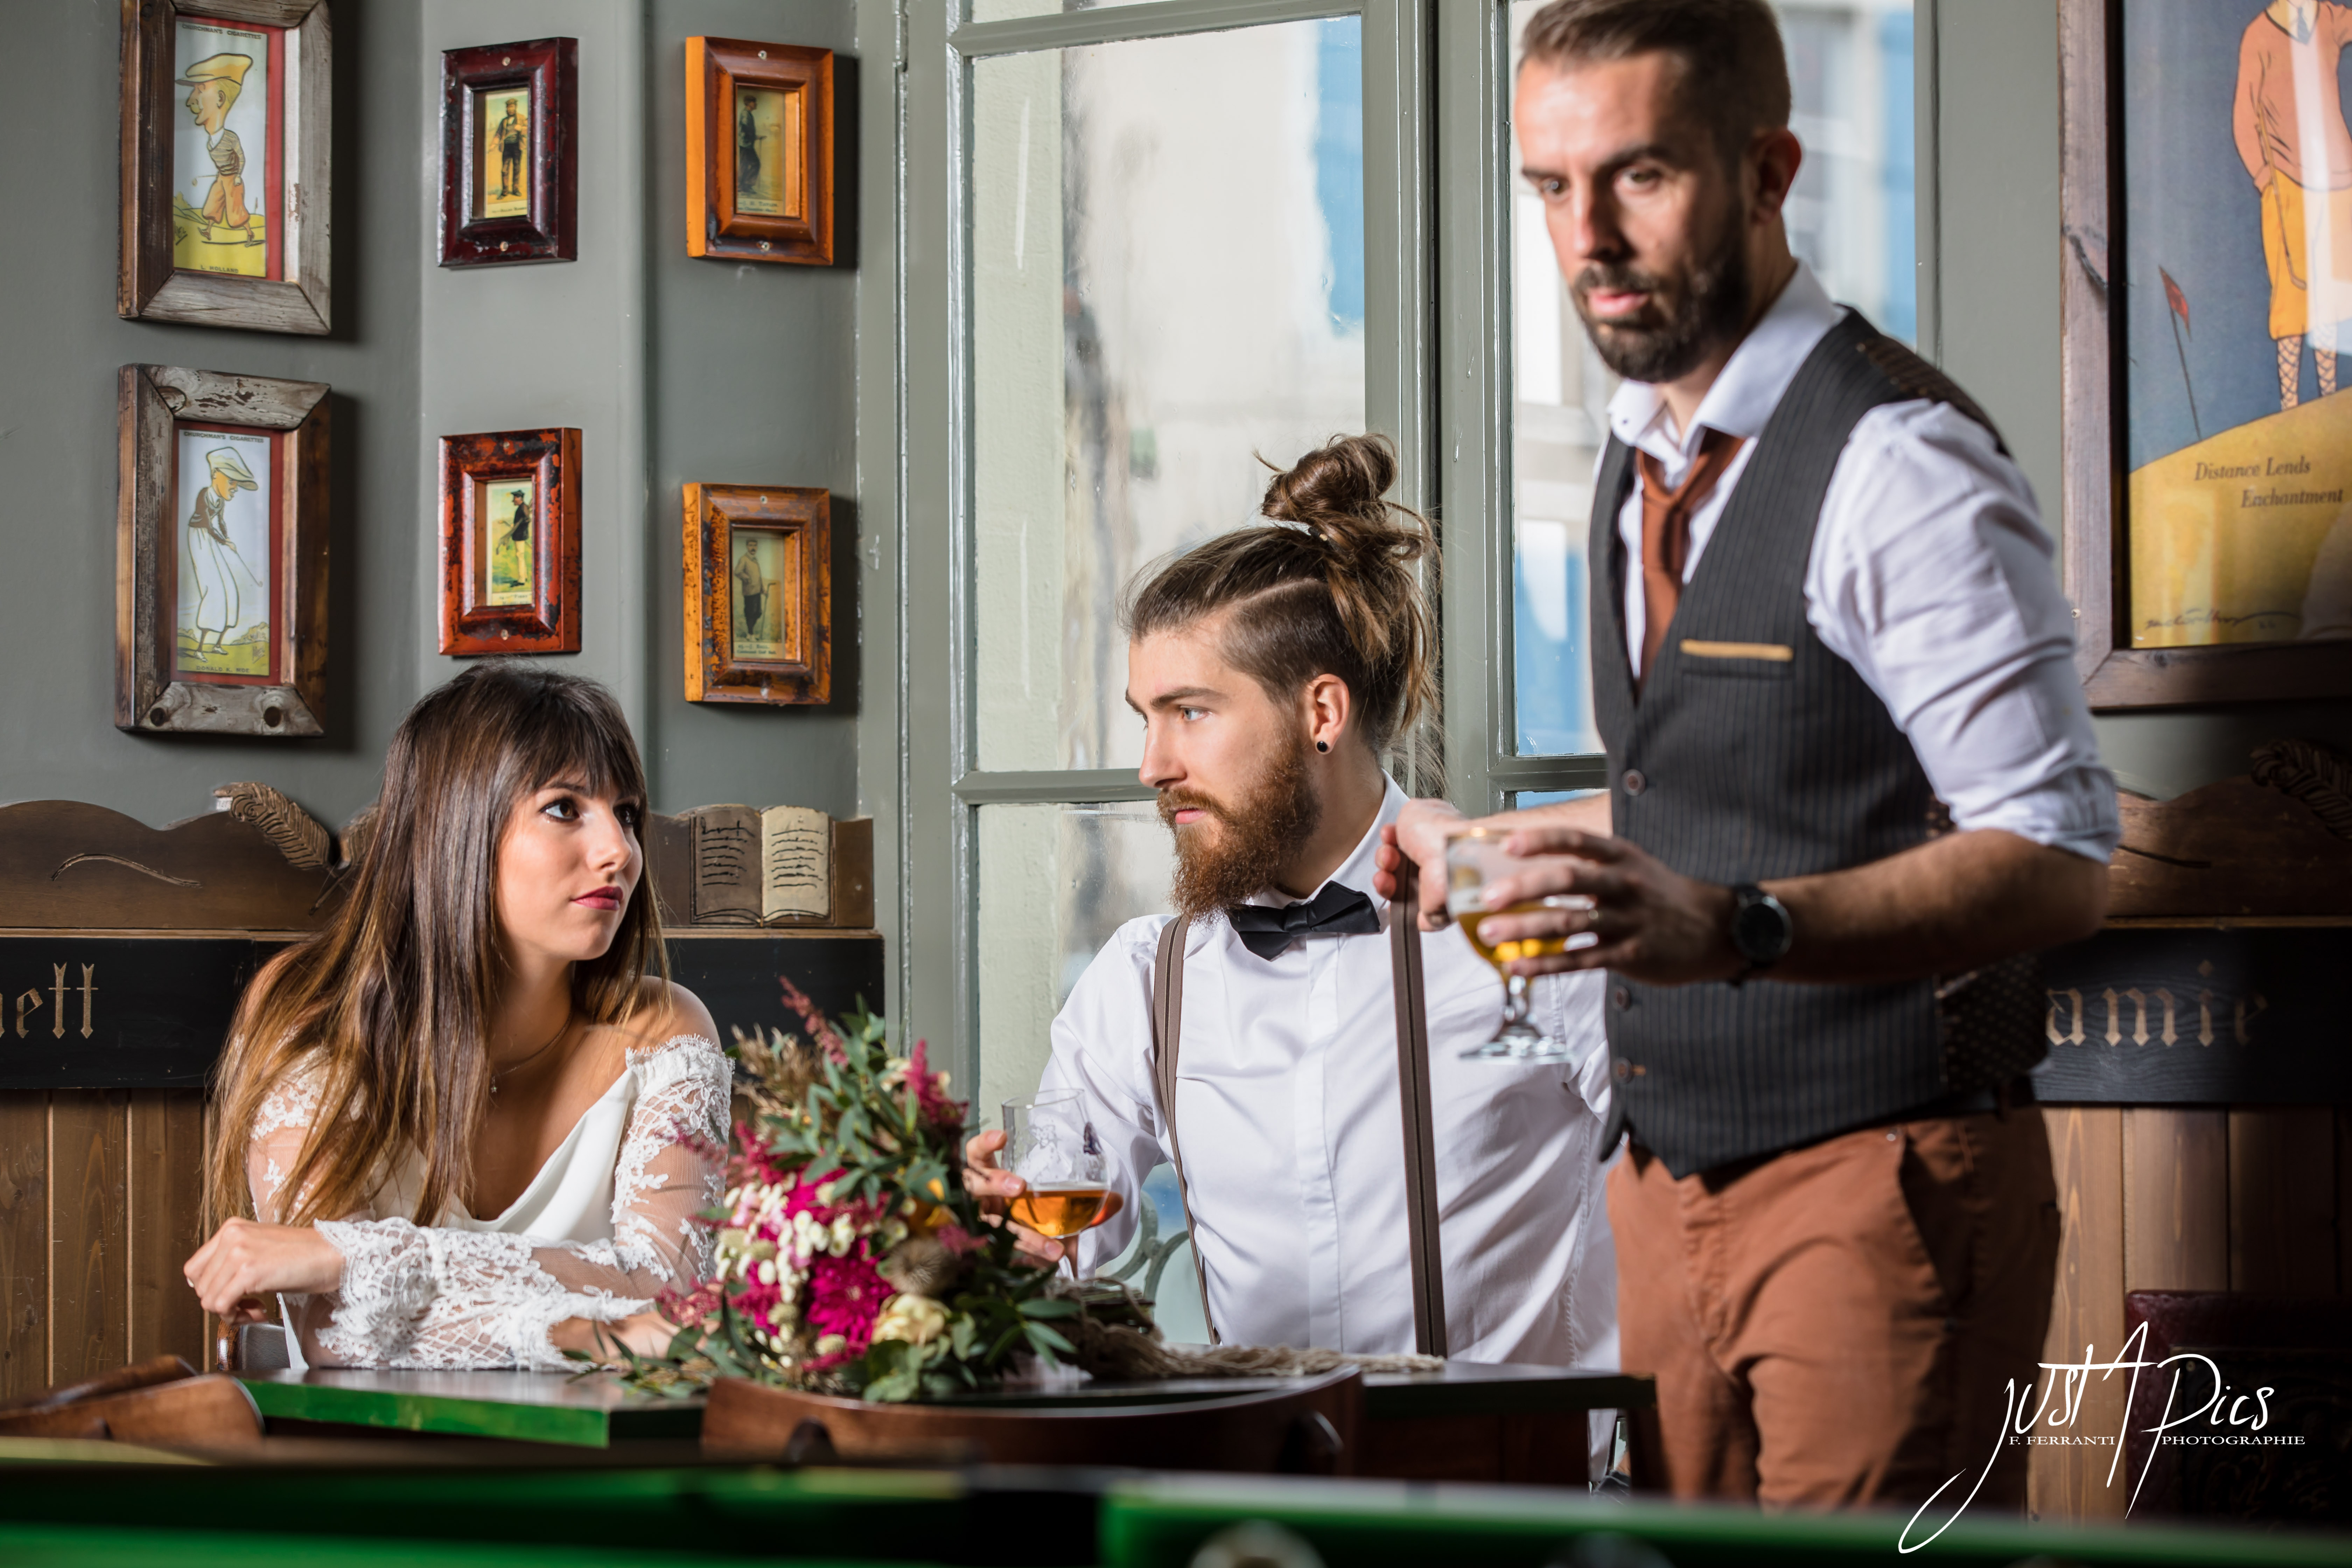 Mariage Hipster - Just A Pics